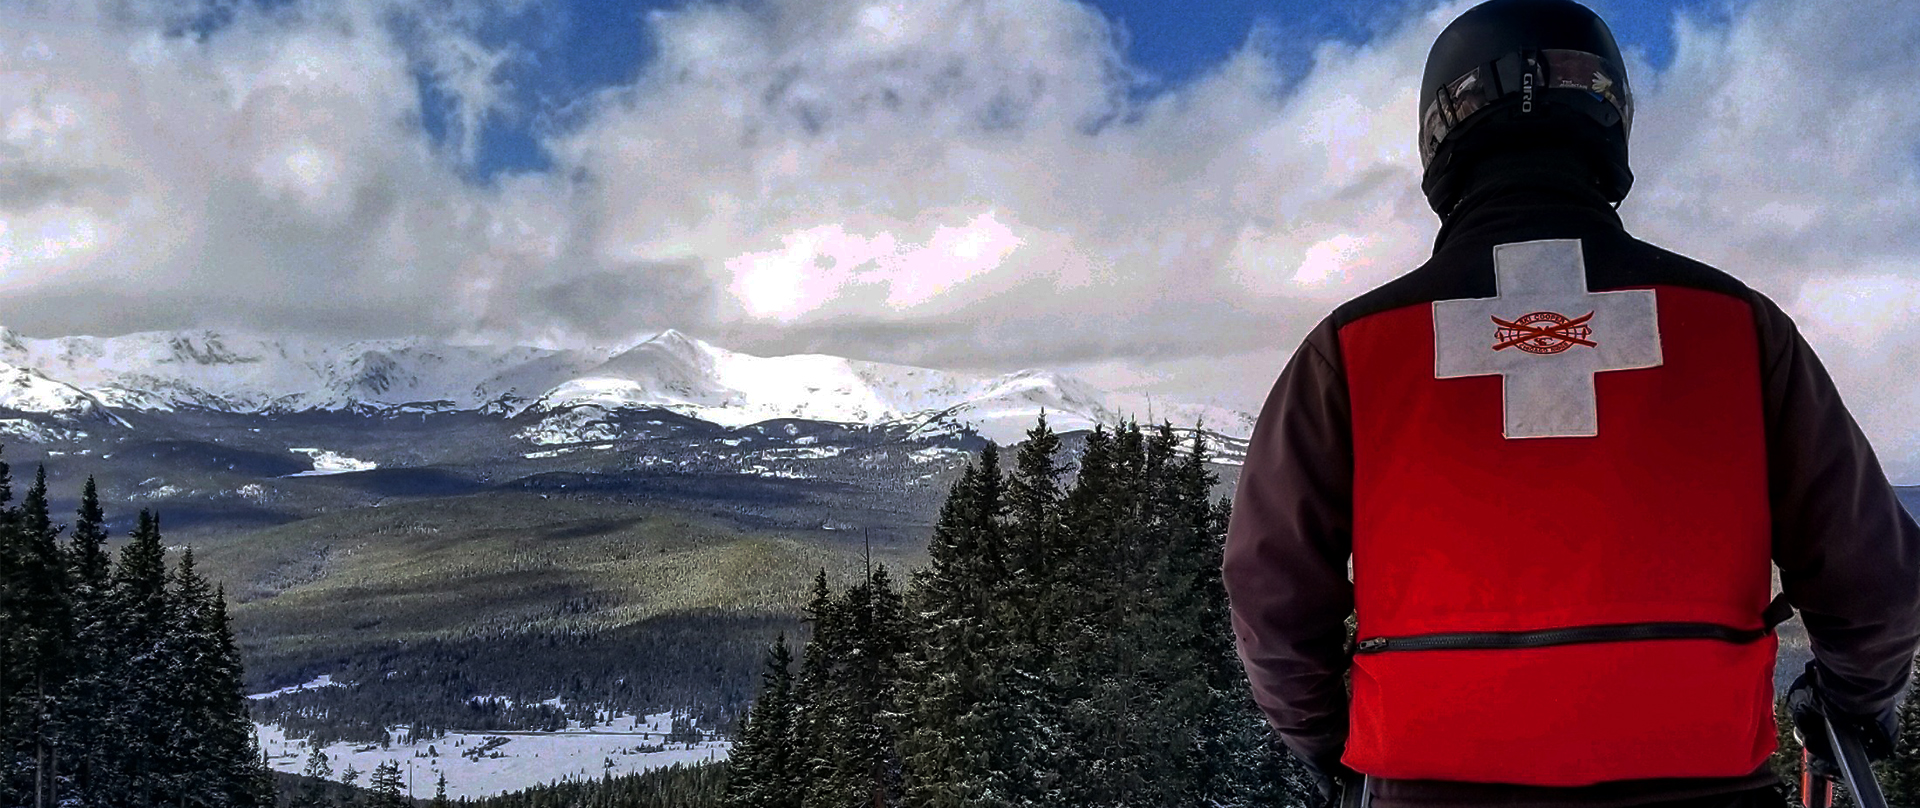 Ski Patroller looking at a view of the mountains